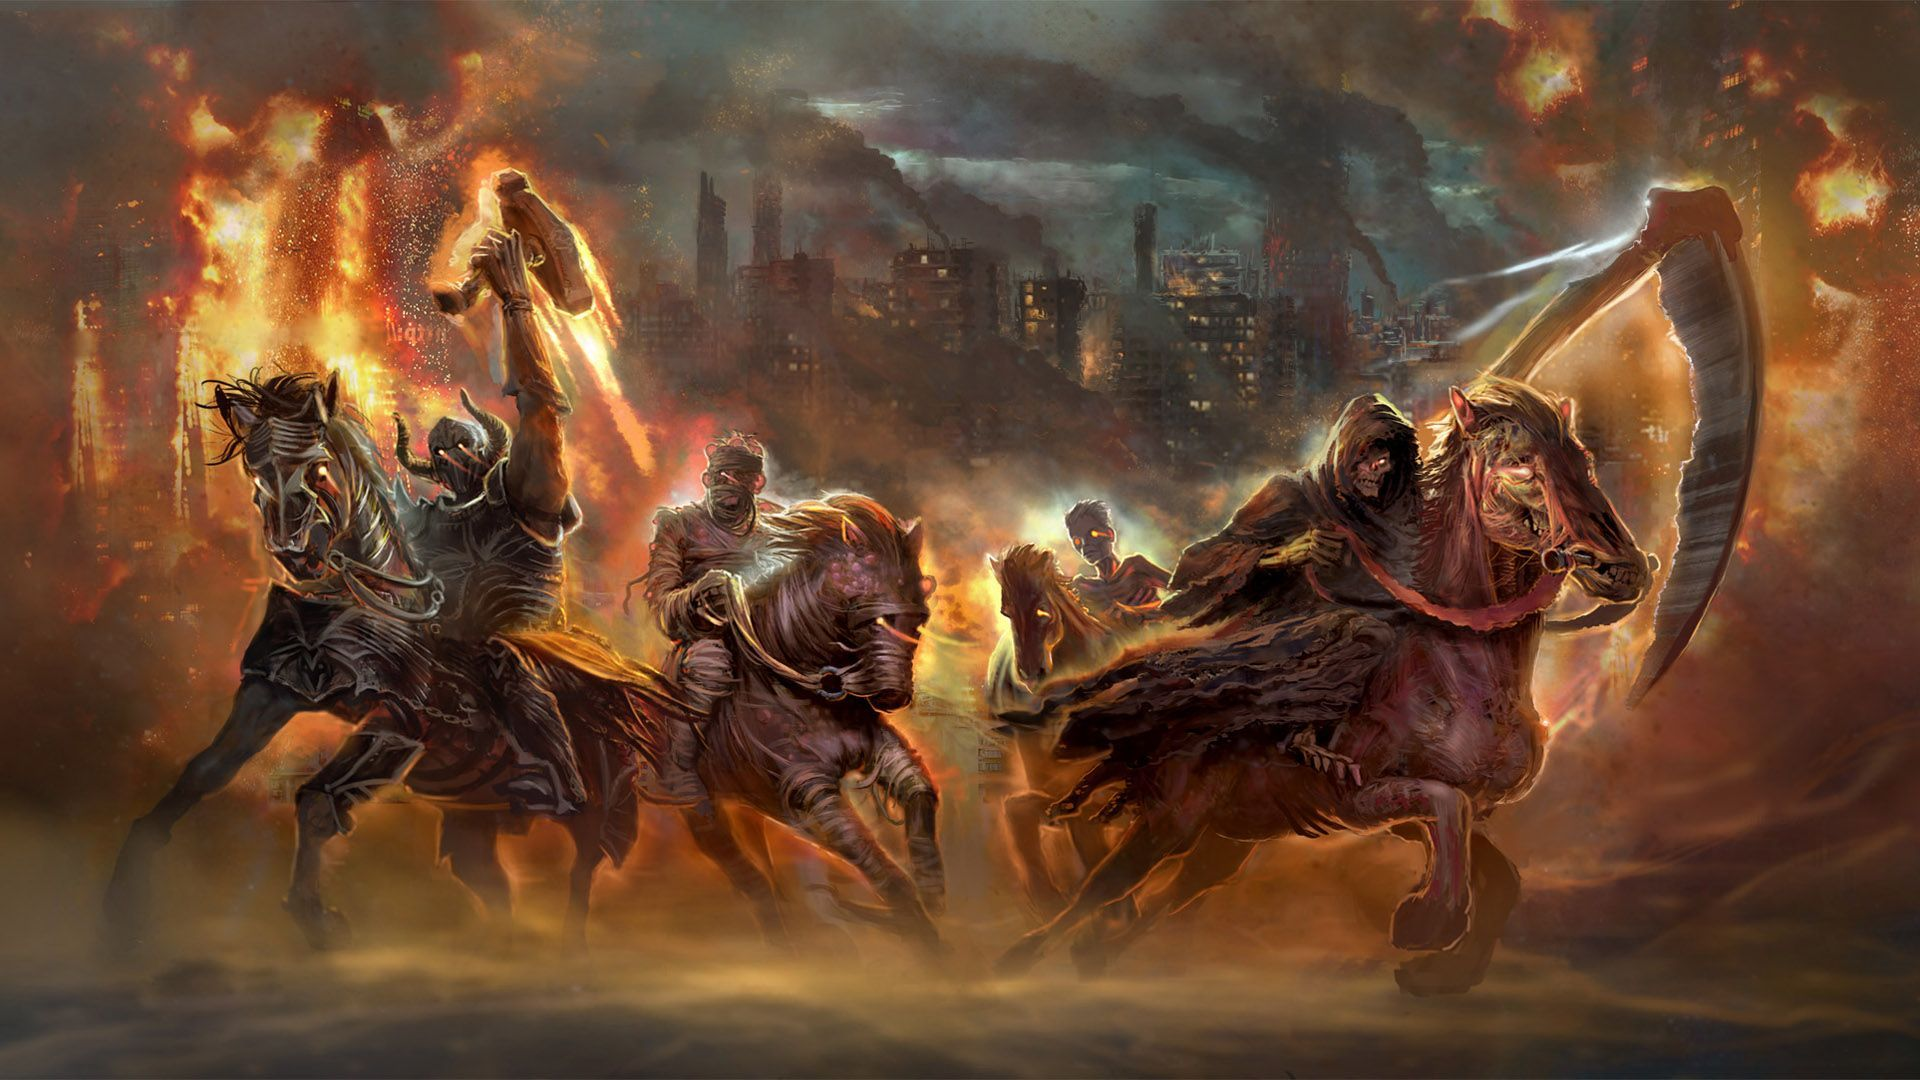 The Four Horsemen of the Apocalypse Wallpaper 10292 1920x1080